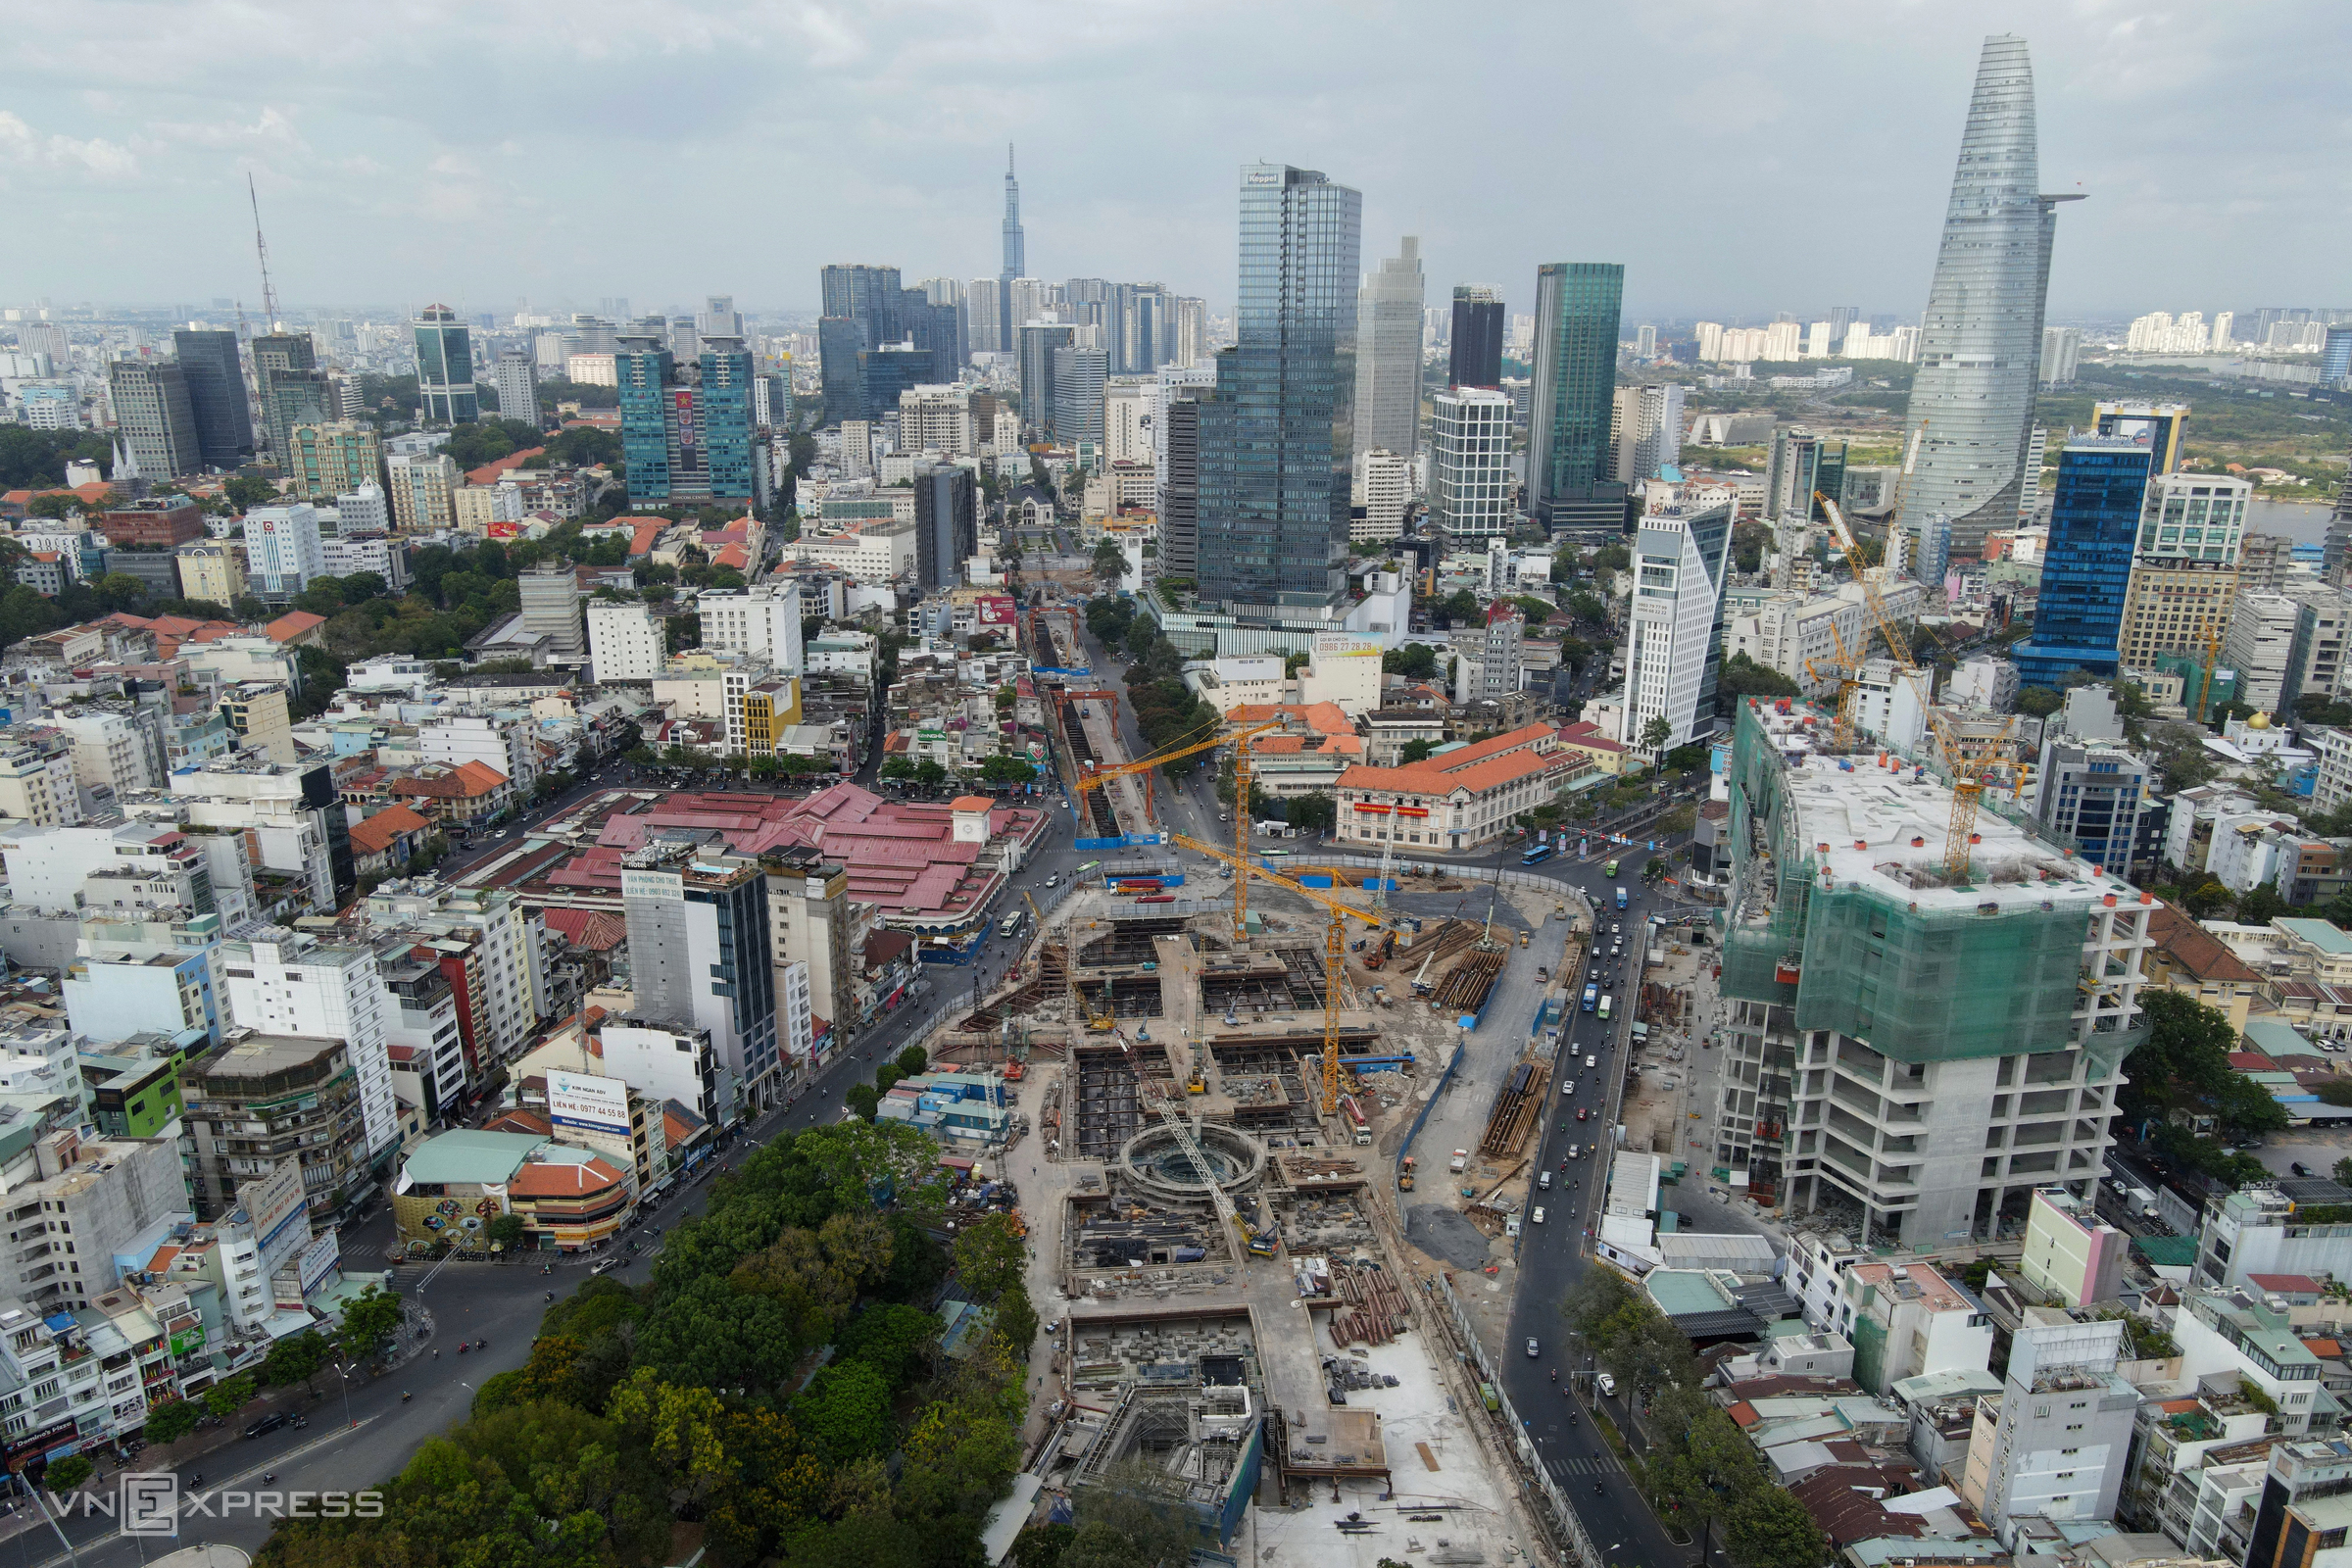 The construction site of Ben Thanh underground metro station, March 2021. Photo by VnExpress/Huu Khoa